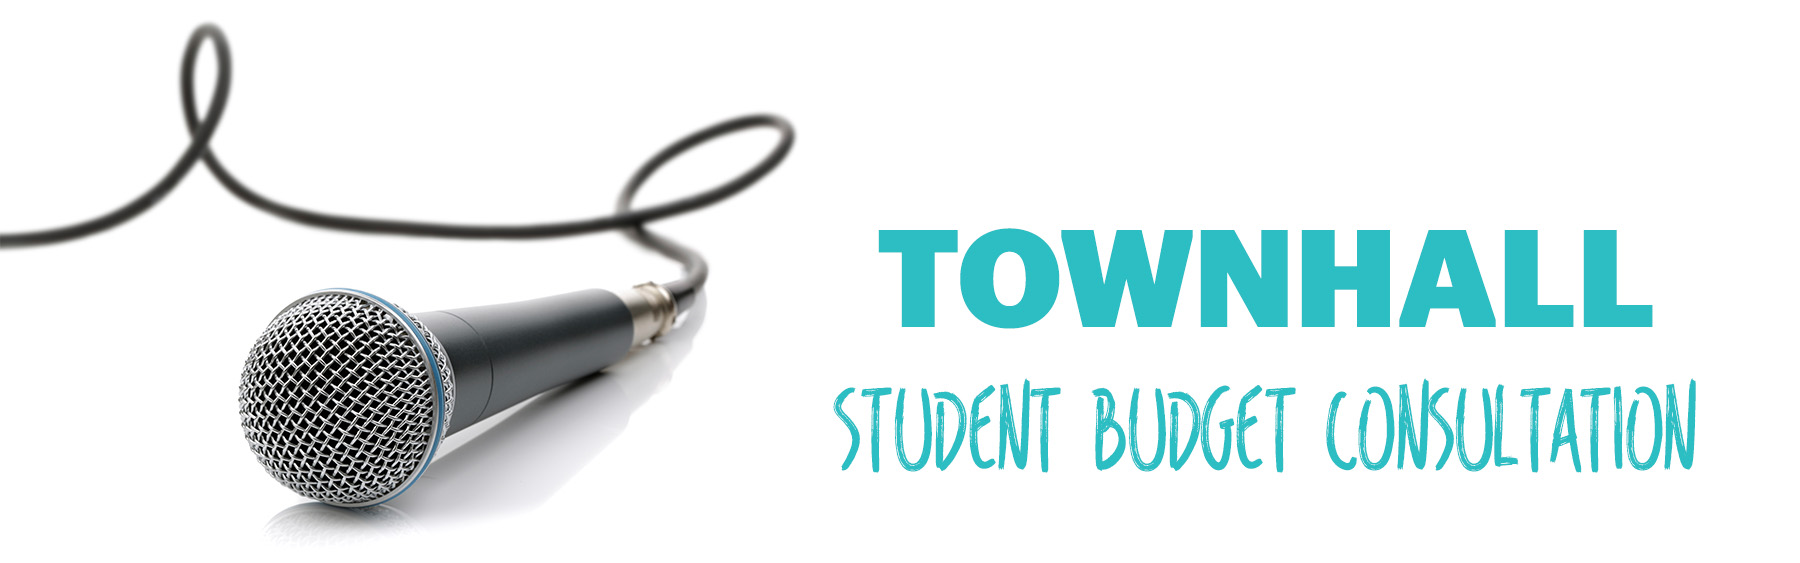 Student Budget Consultation Town Hall